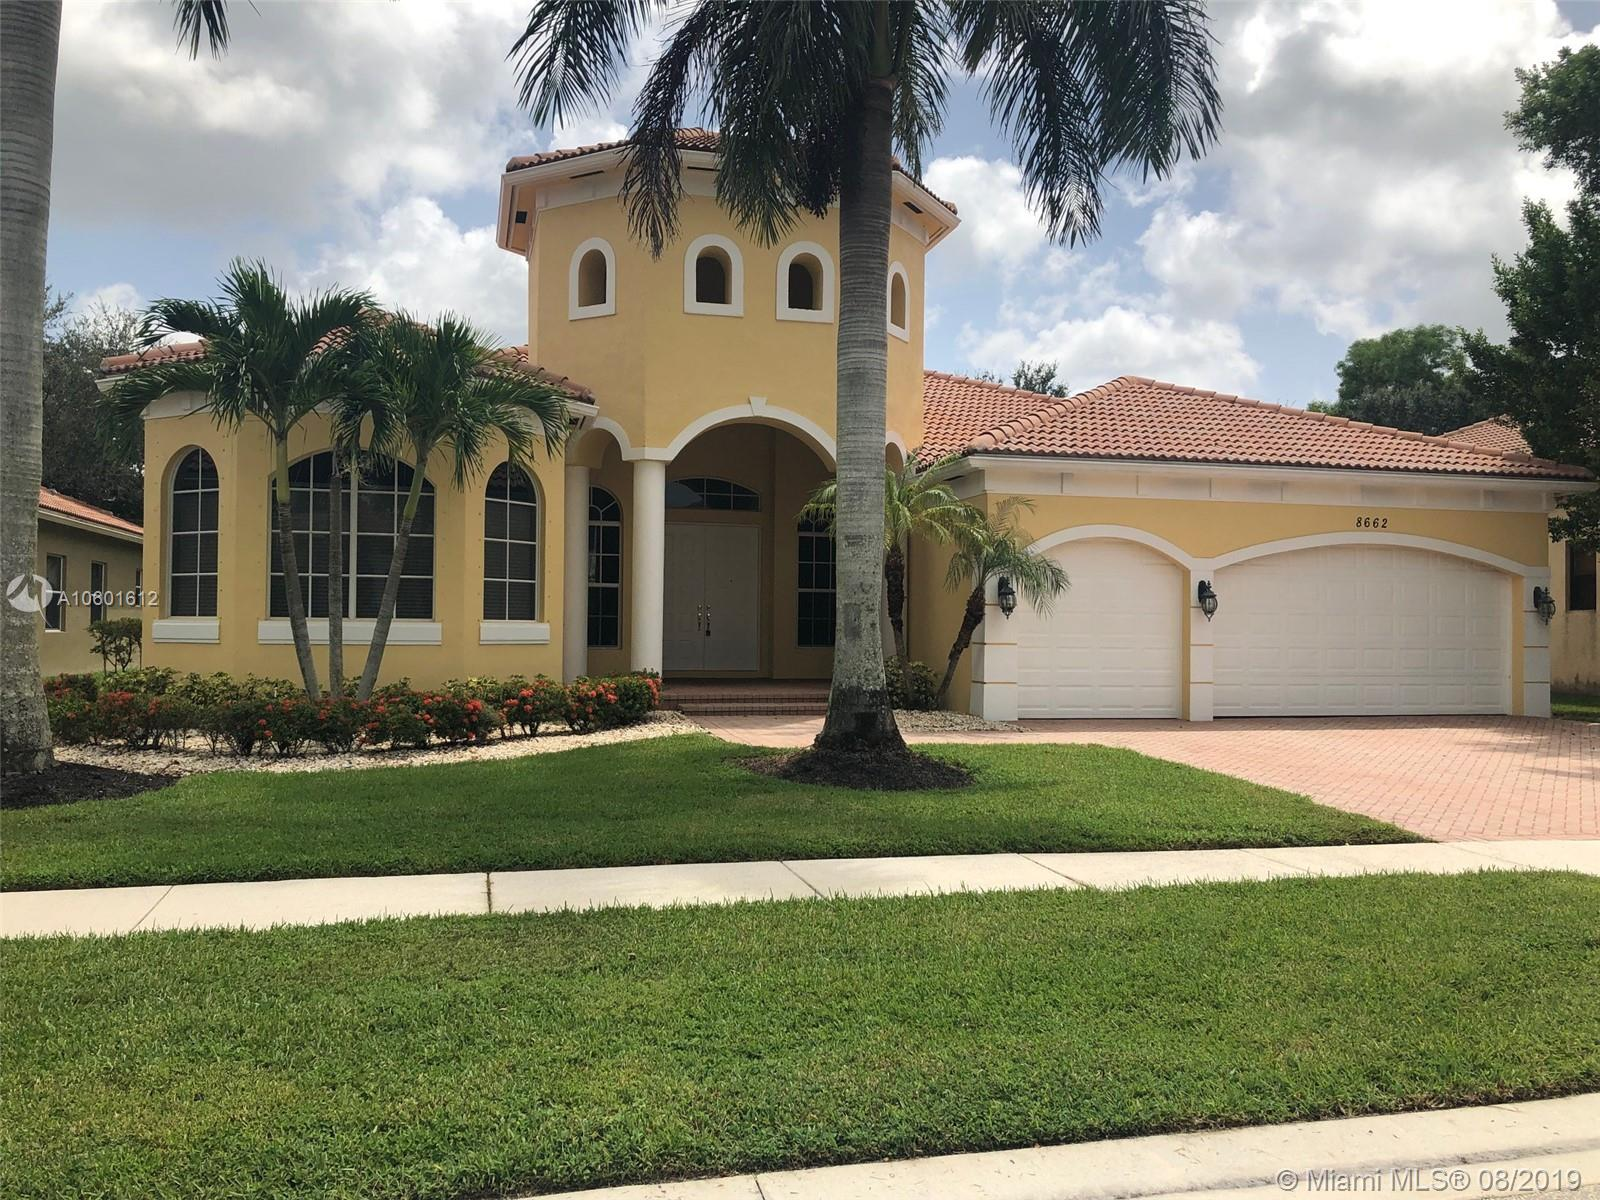 Lake Worth Homes For Sale Palm Beach Broward Homes